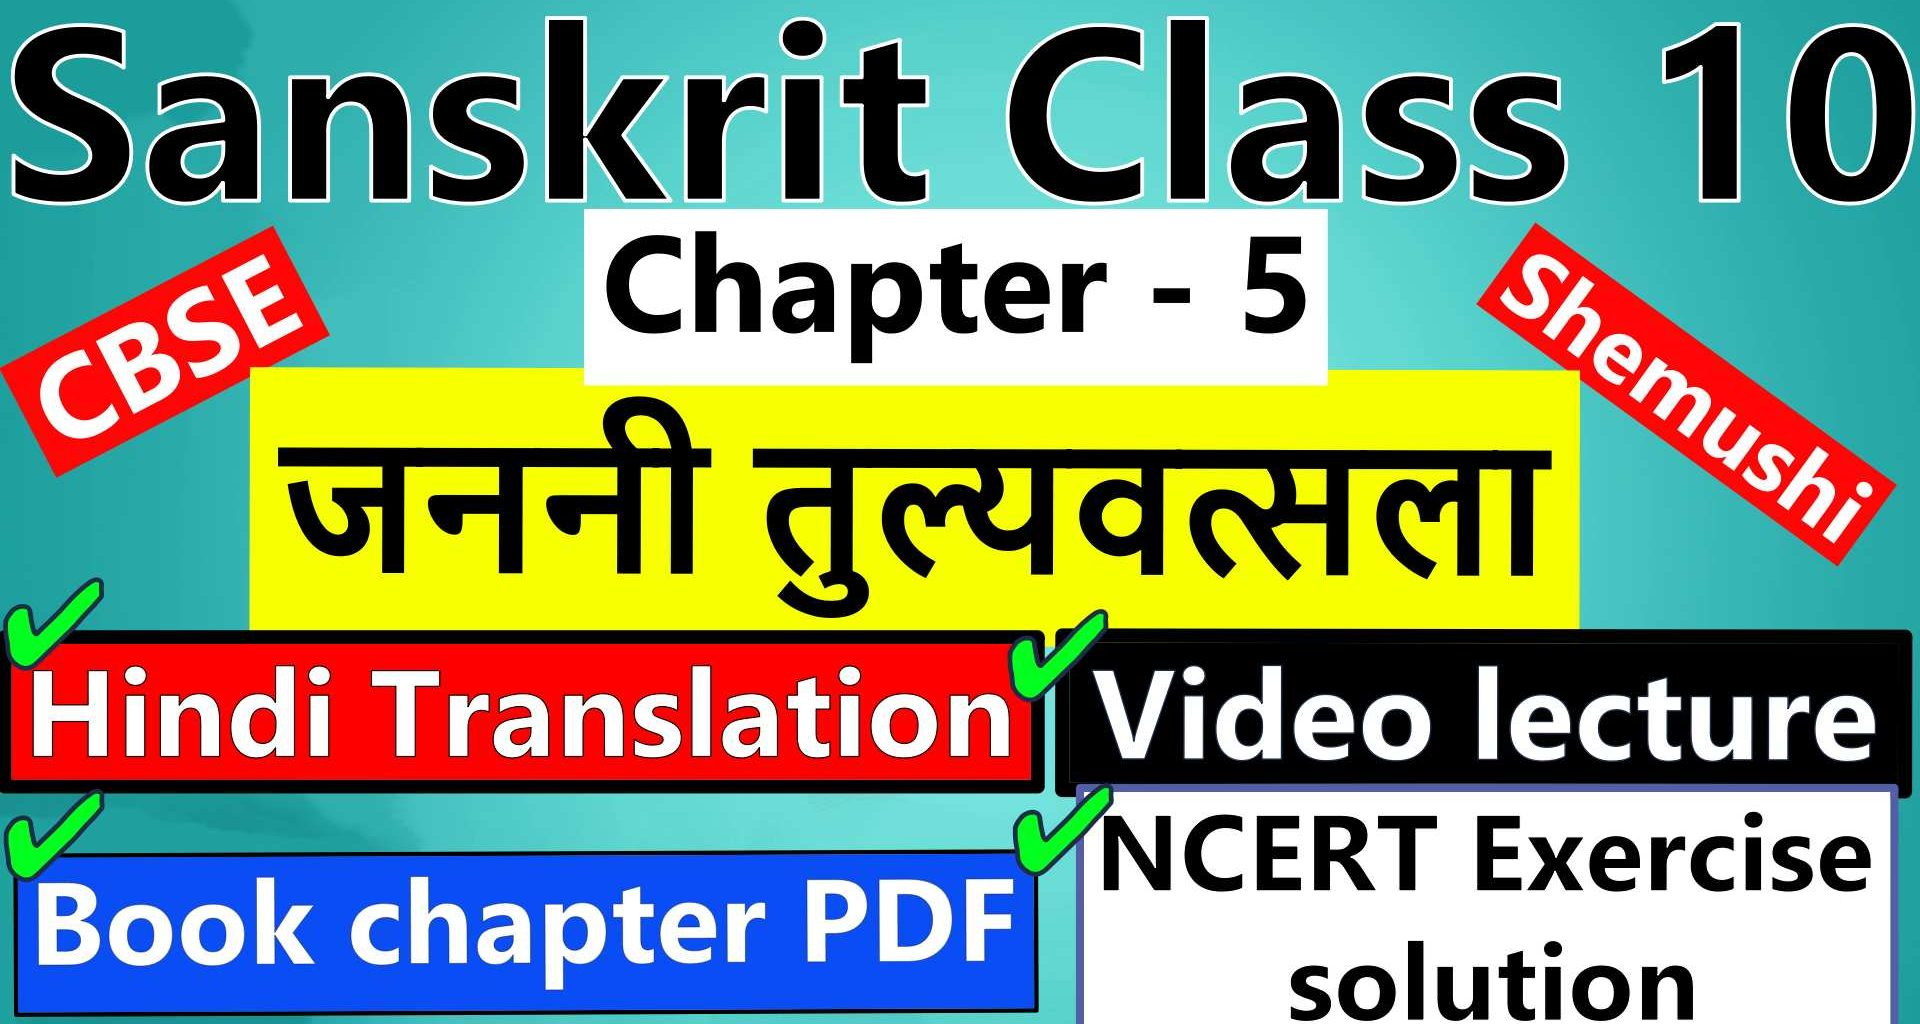 sanskrit-class-10-chapter-5-जननी-तुल्यवत्सला-Hindi-Translation-Video-lecture-NCERT-Exercise-Solution-Question-Answer-Book-chapter PDF